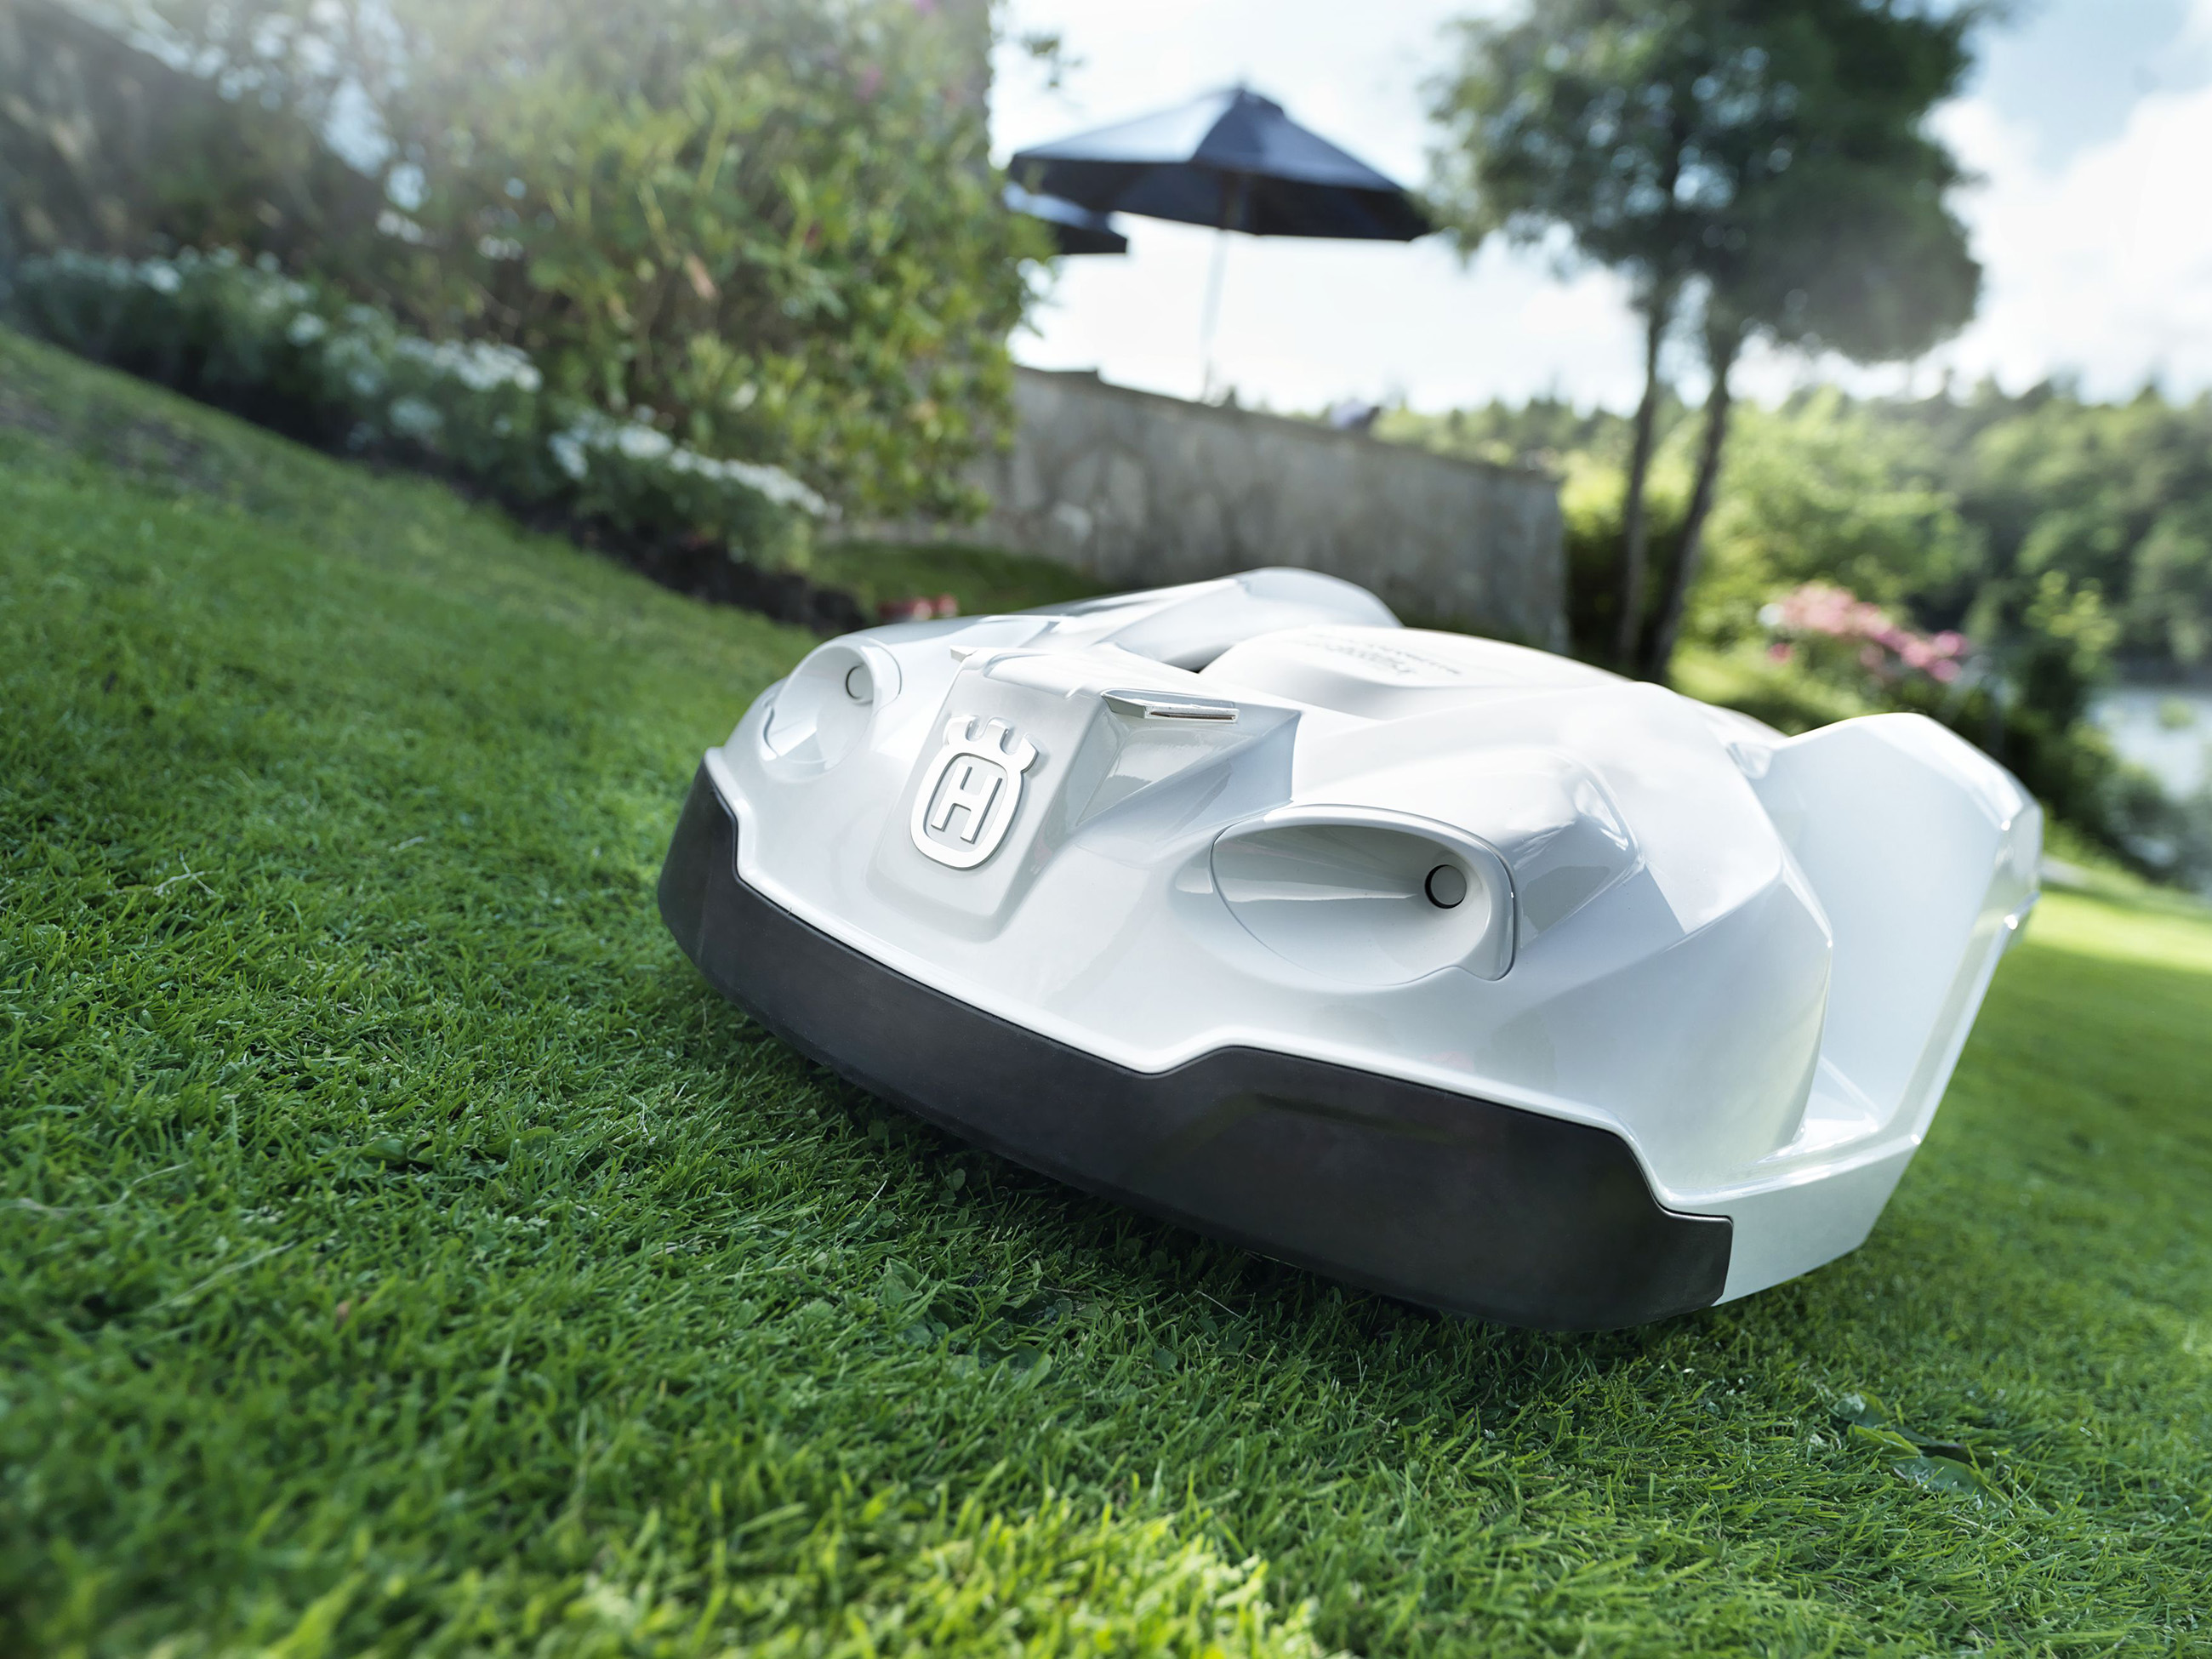 Husqvarna launches first apple watch app for robotic mowers for Husqvarna robot